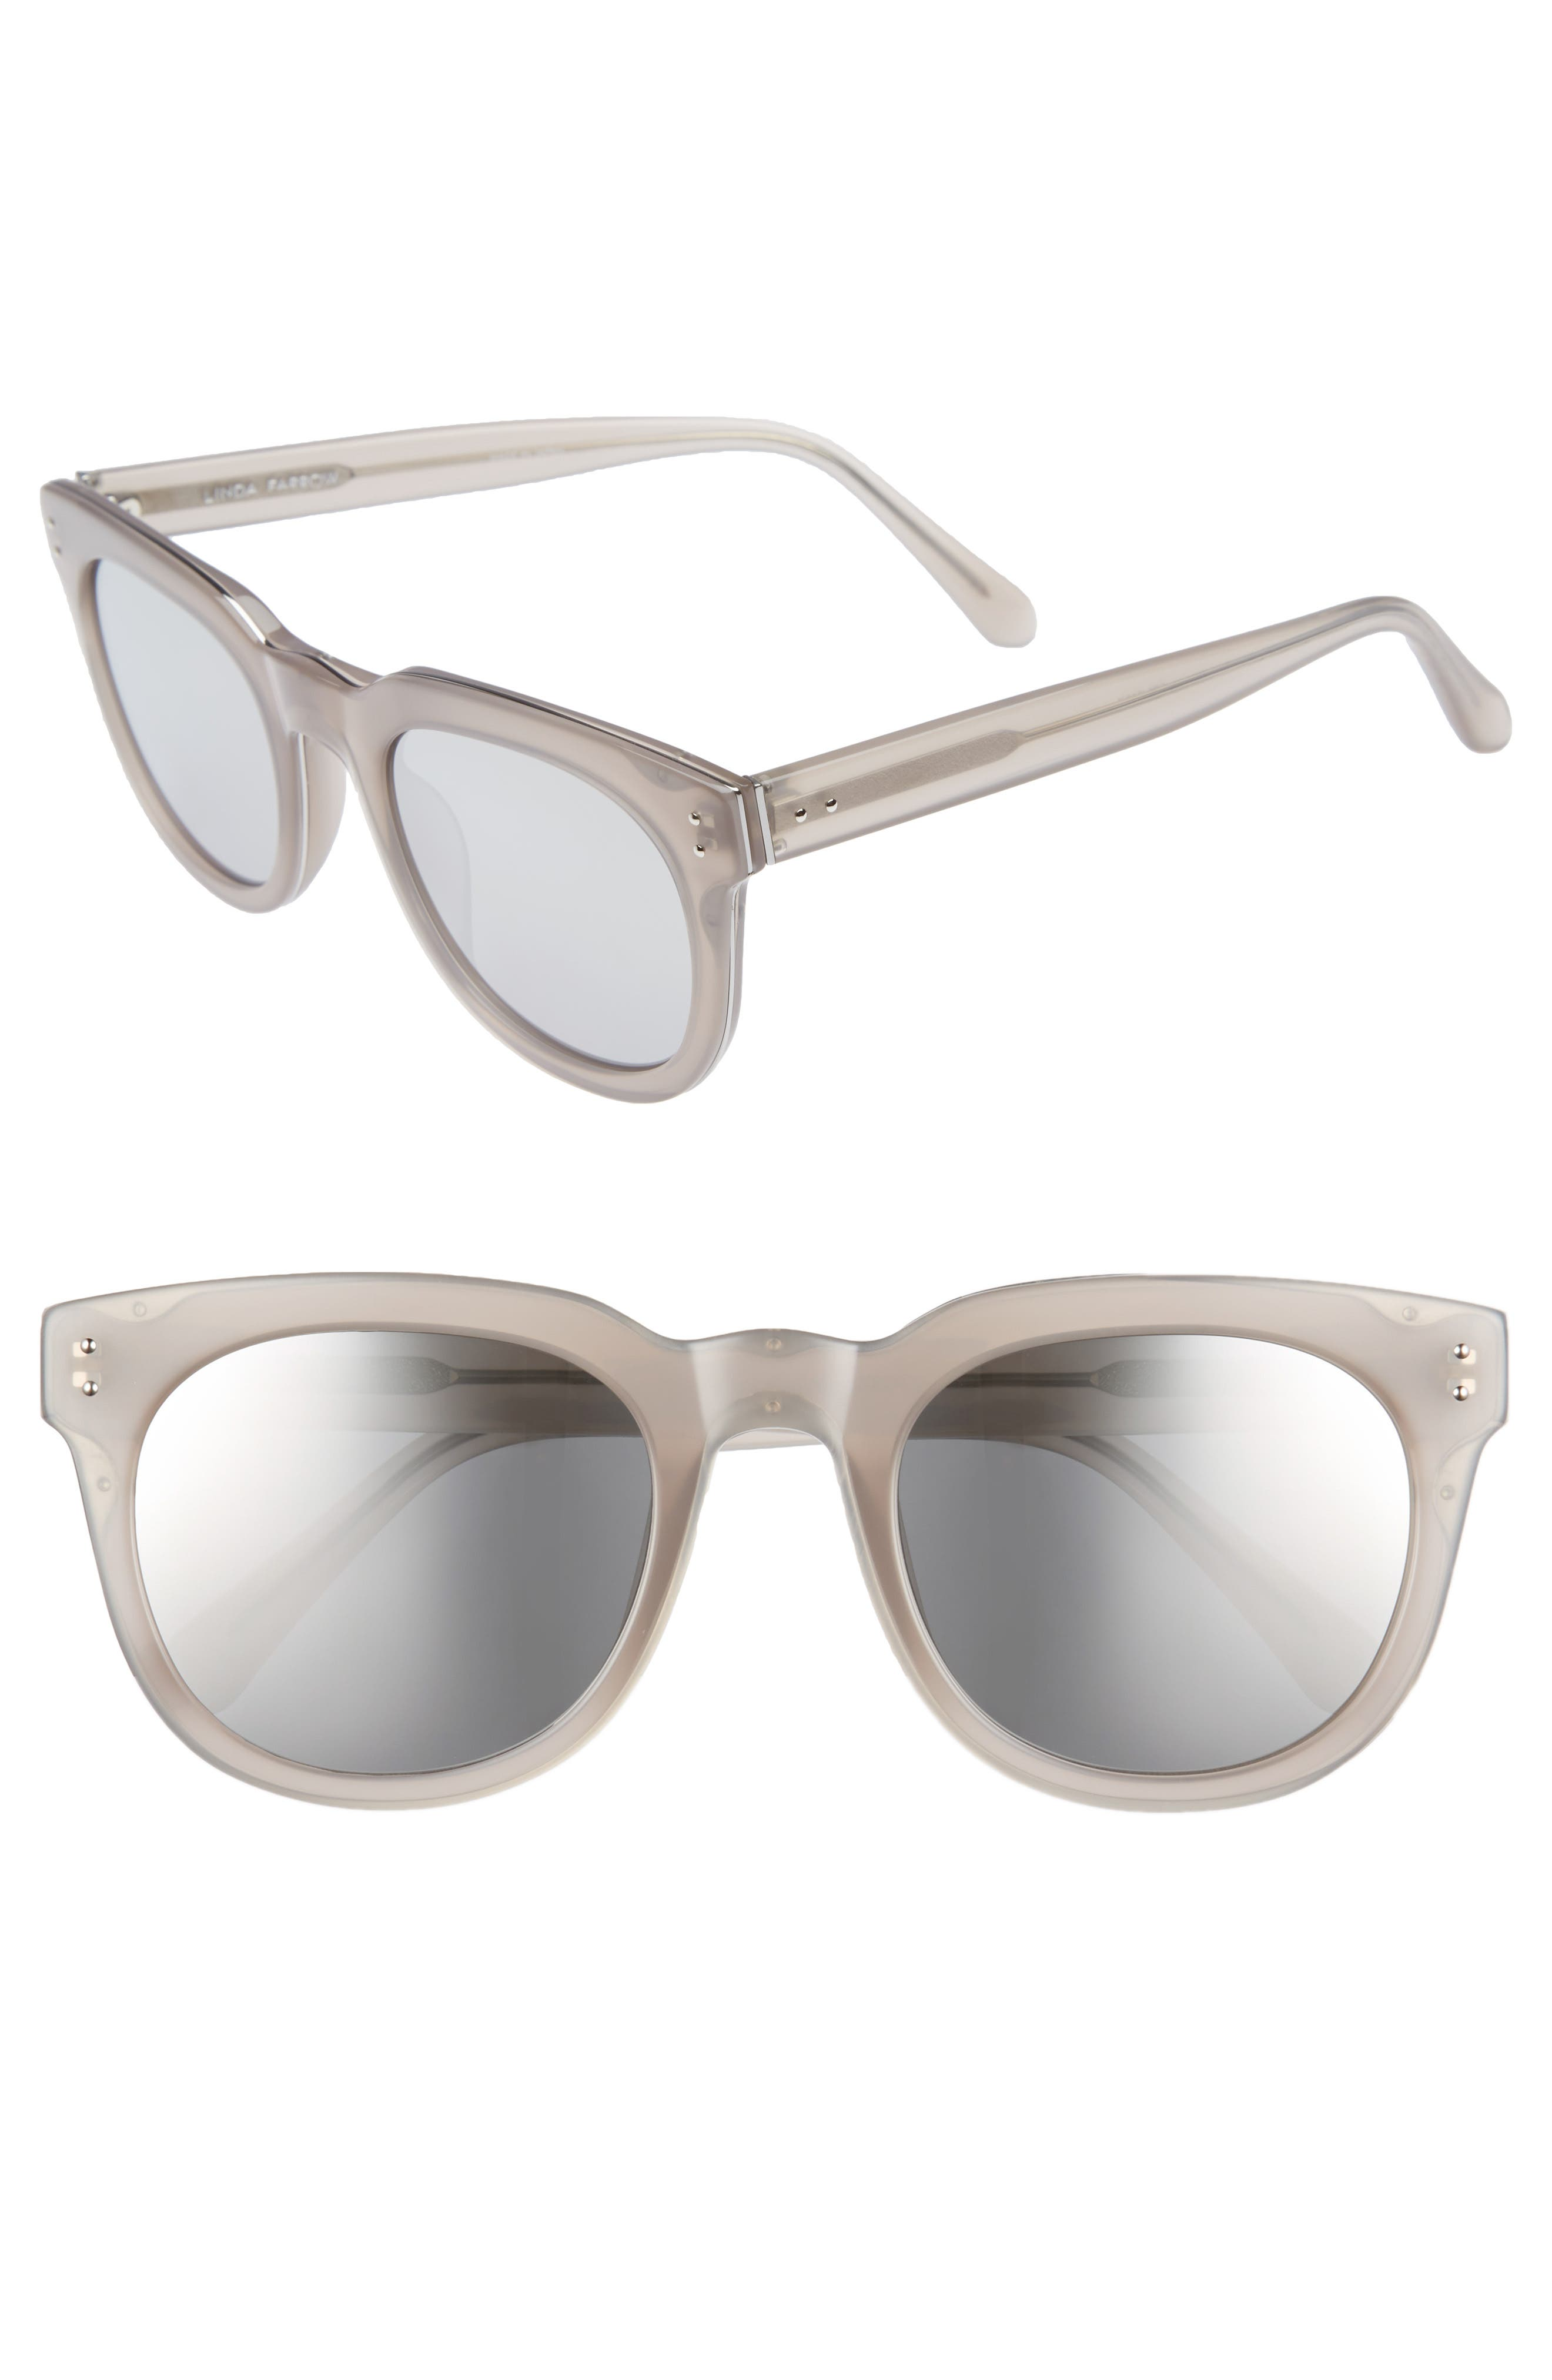 50mm D-Frame Mirrored Sunglasses,                         Main,                         color, Milky Grey/ White Gold